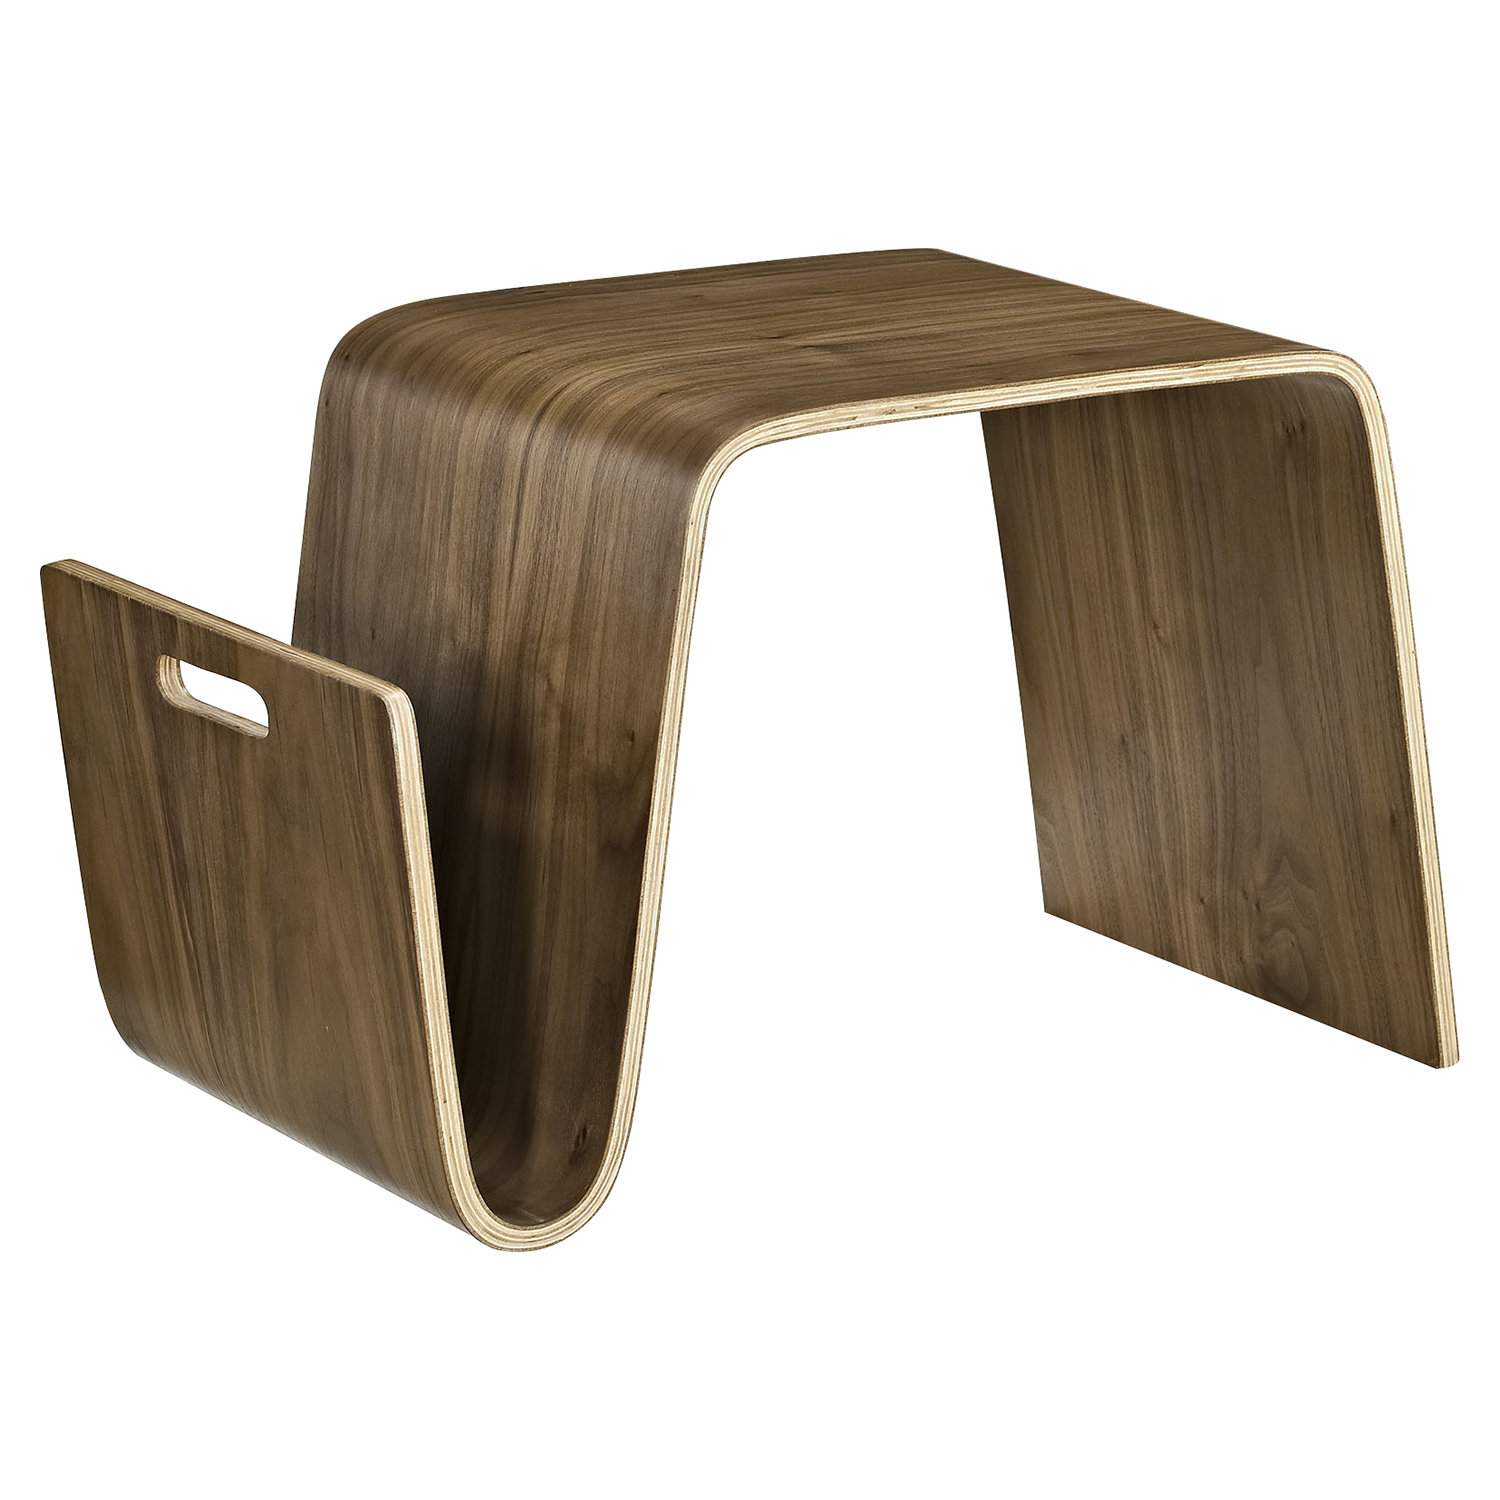 Polaris Wood Coffee Table - Magazine Racks, Walnut - EEI-2092-WAL